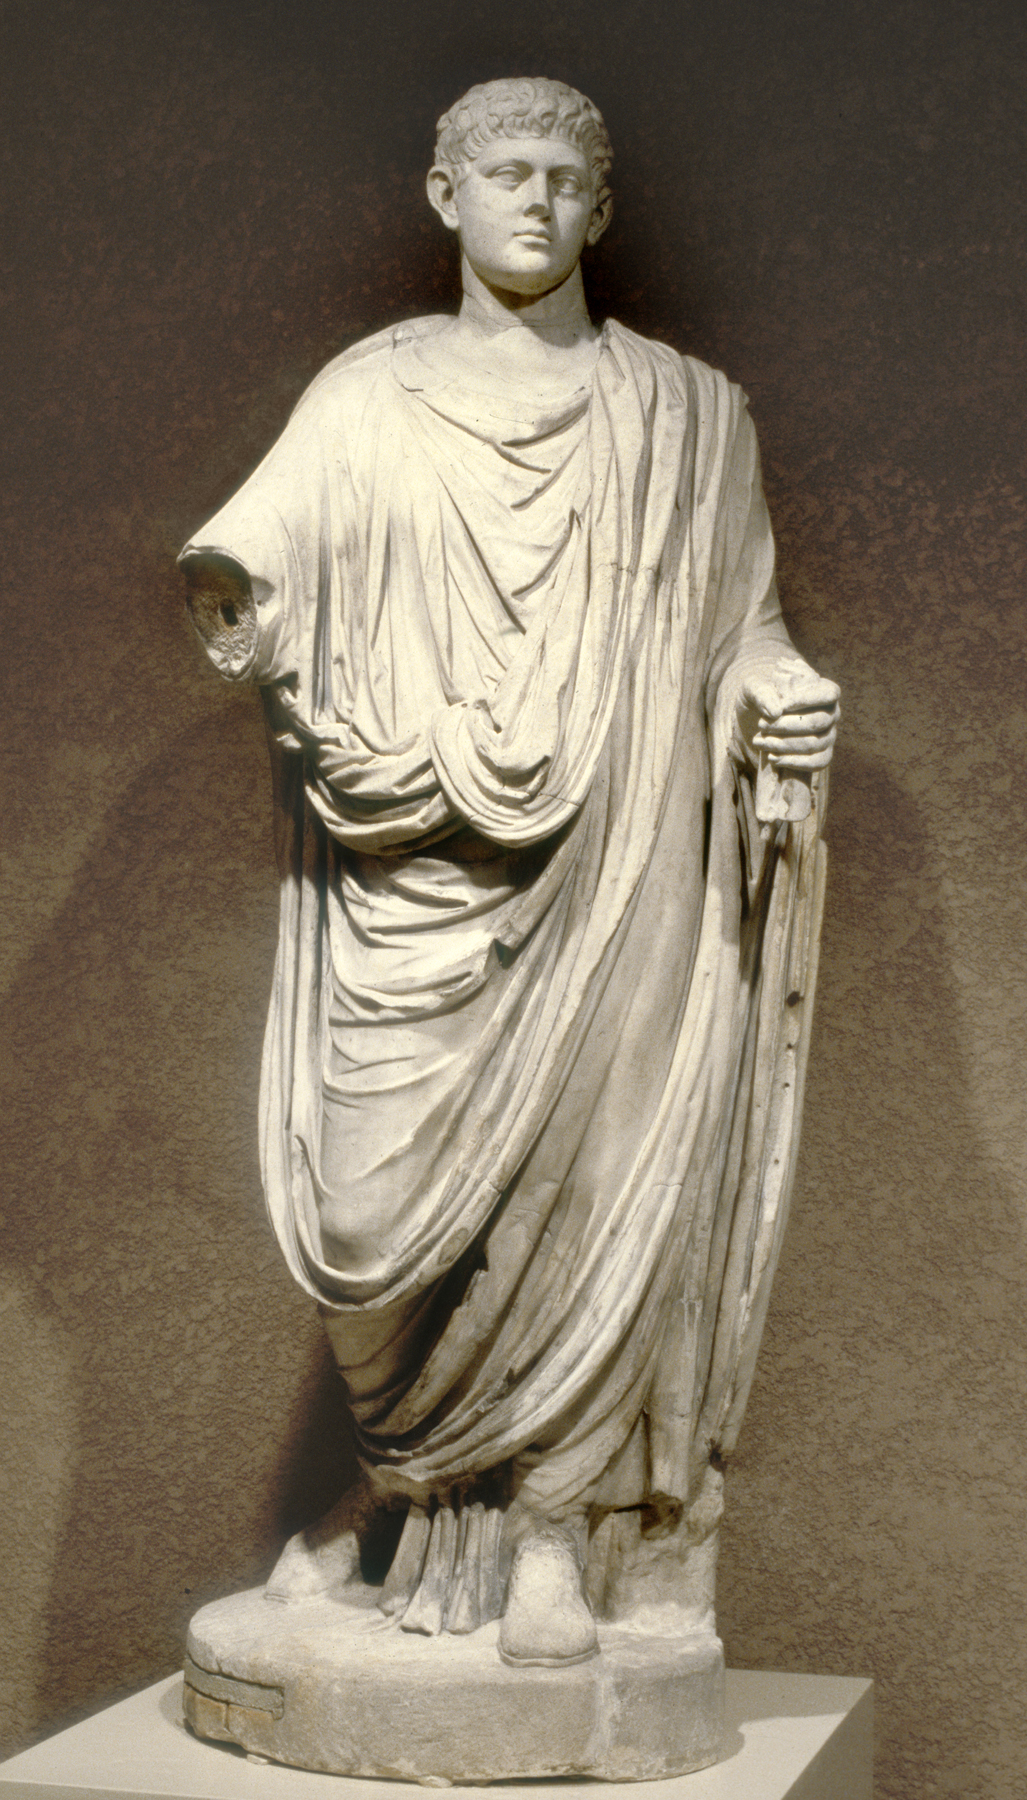 Roman_-_Emperor_Wearing_a_Toga_-_Walters_23226